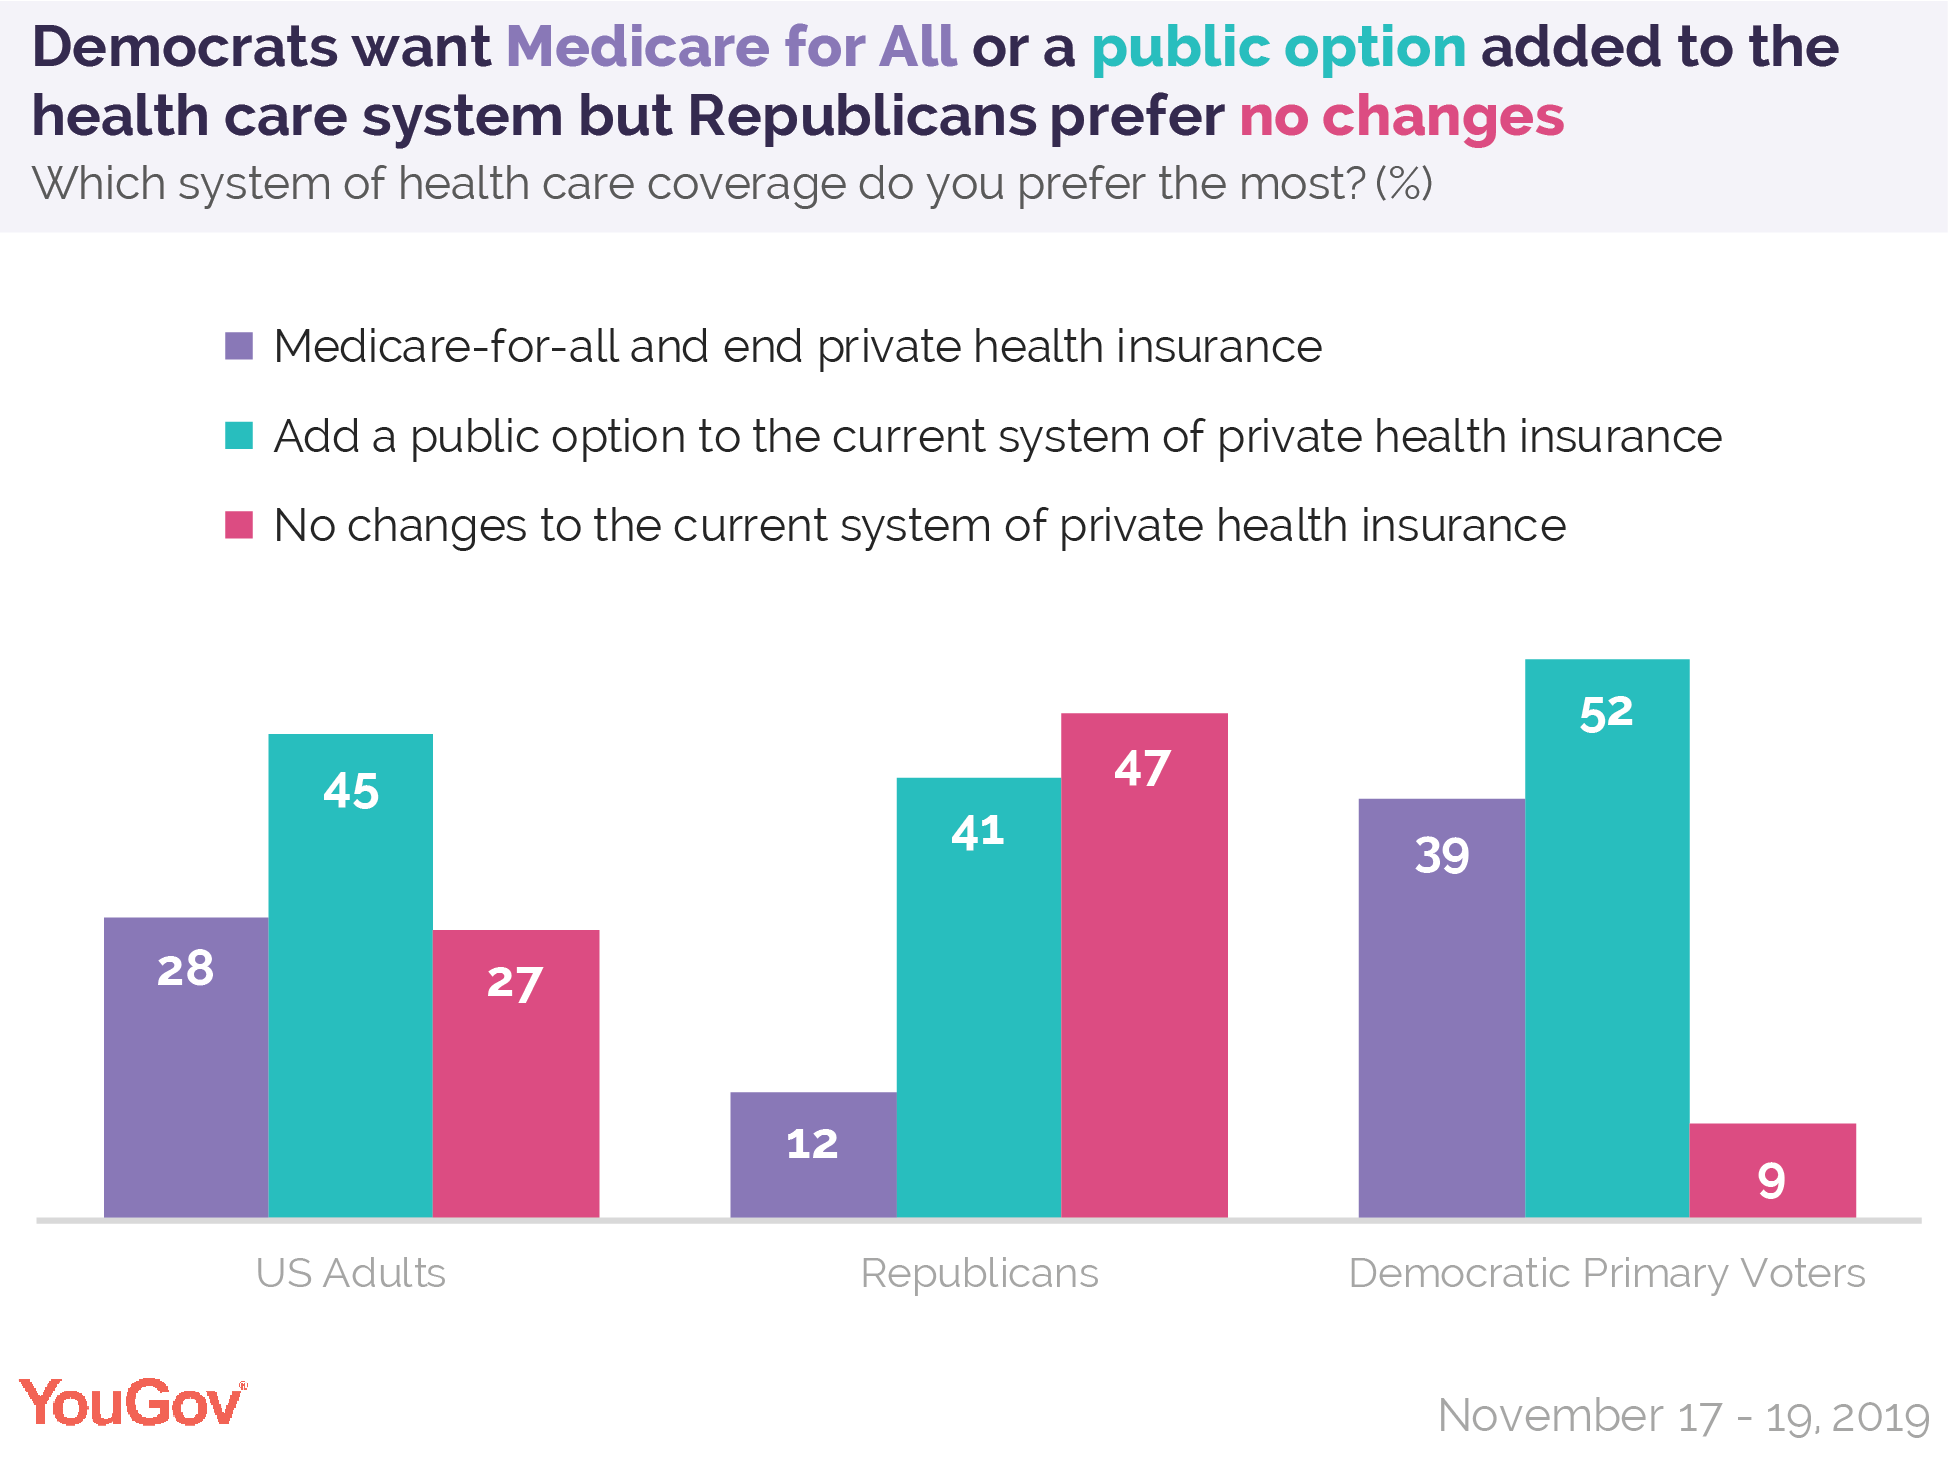 Democrats want Medicare for All or a public option added to the healthcare system, but Republicans prefer no changes